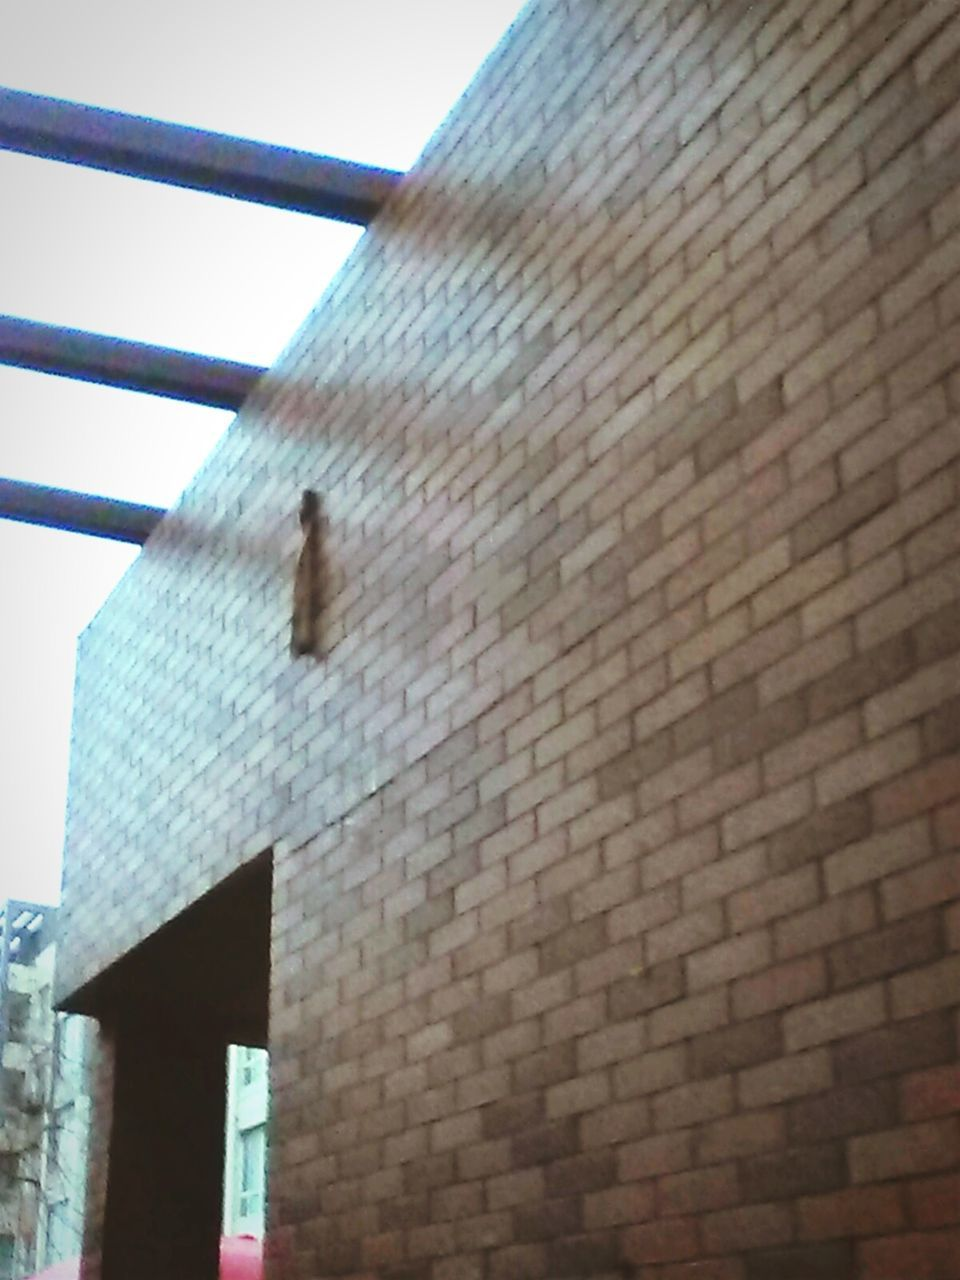 built structure, architecture, building exterior, low angle view, brick wall, day, outdoors, no people, sky, close-up